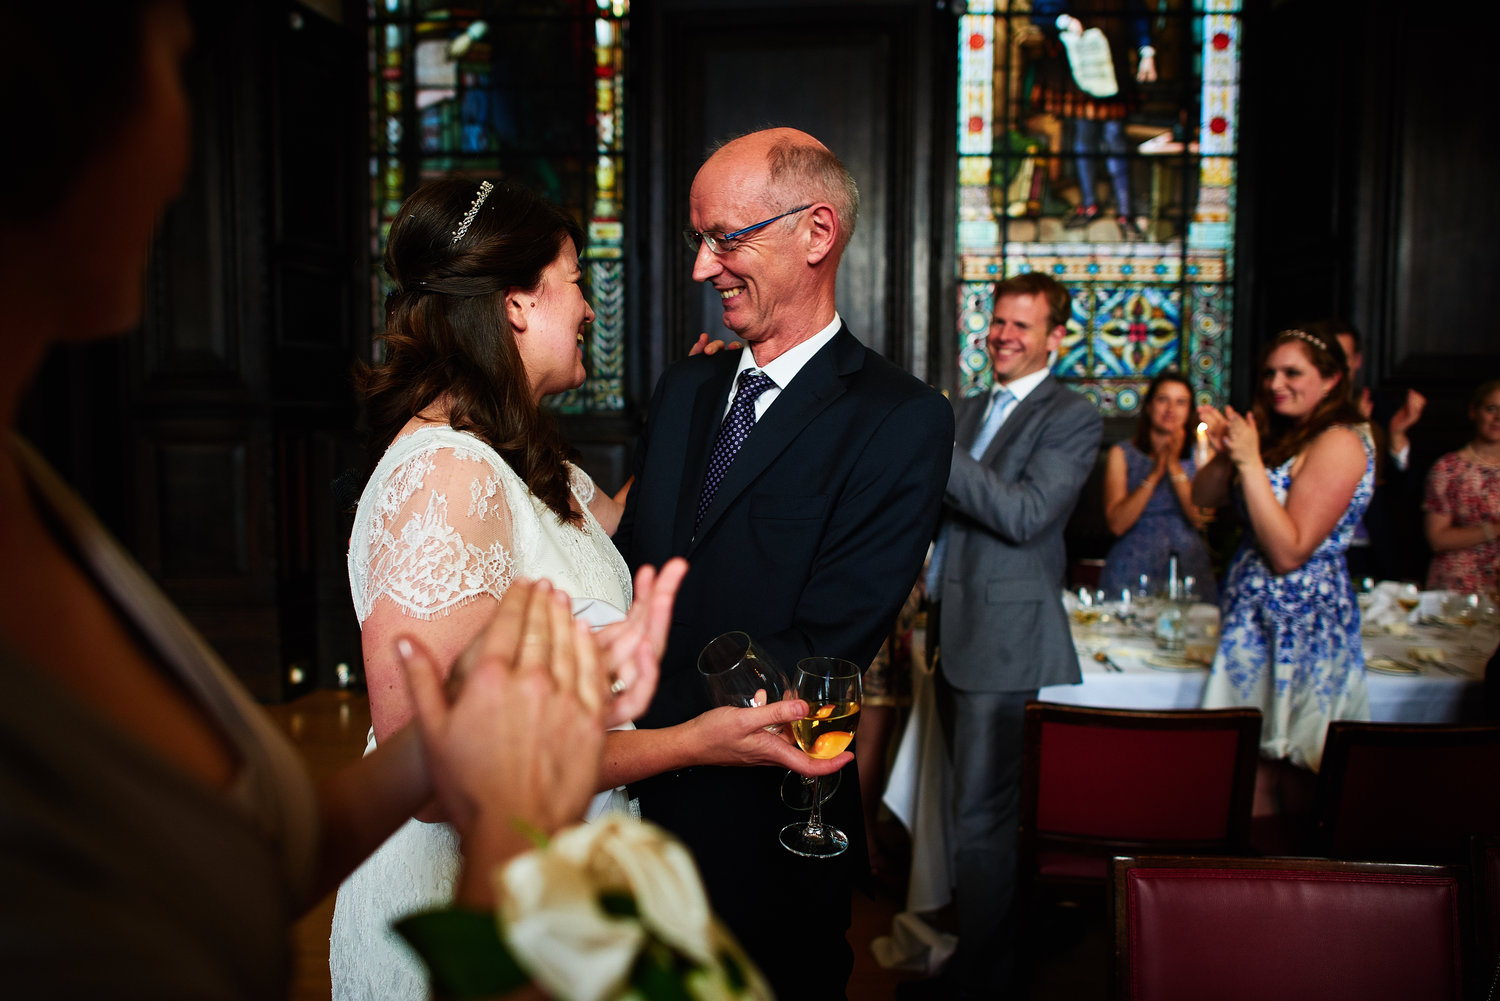 Bride with her father - reportage wedding photography at Stationers Hall London